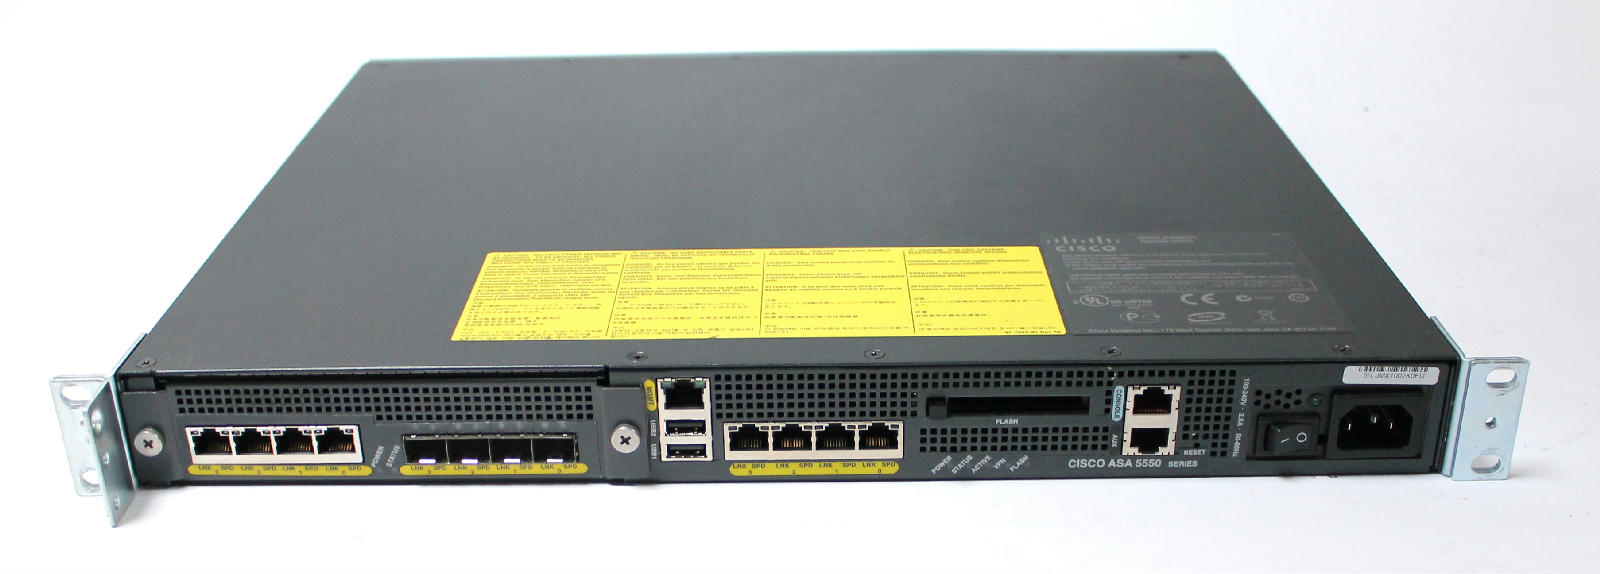 Cisco Asa 5550 Vpn Premium Appliance Firewall 4gb Ram